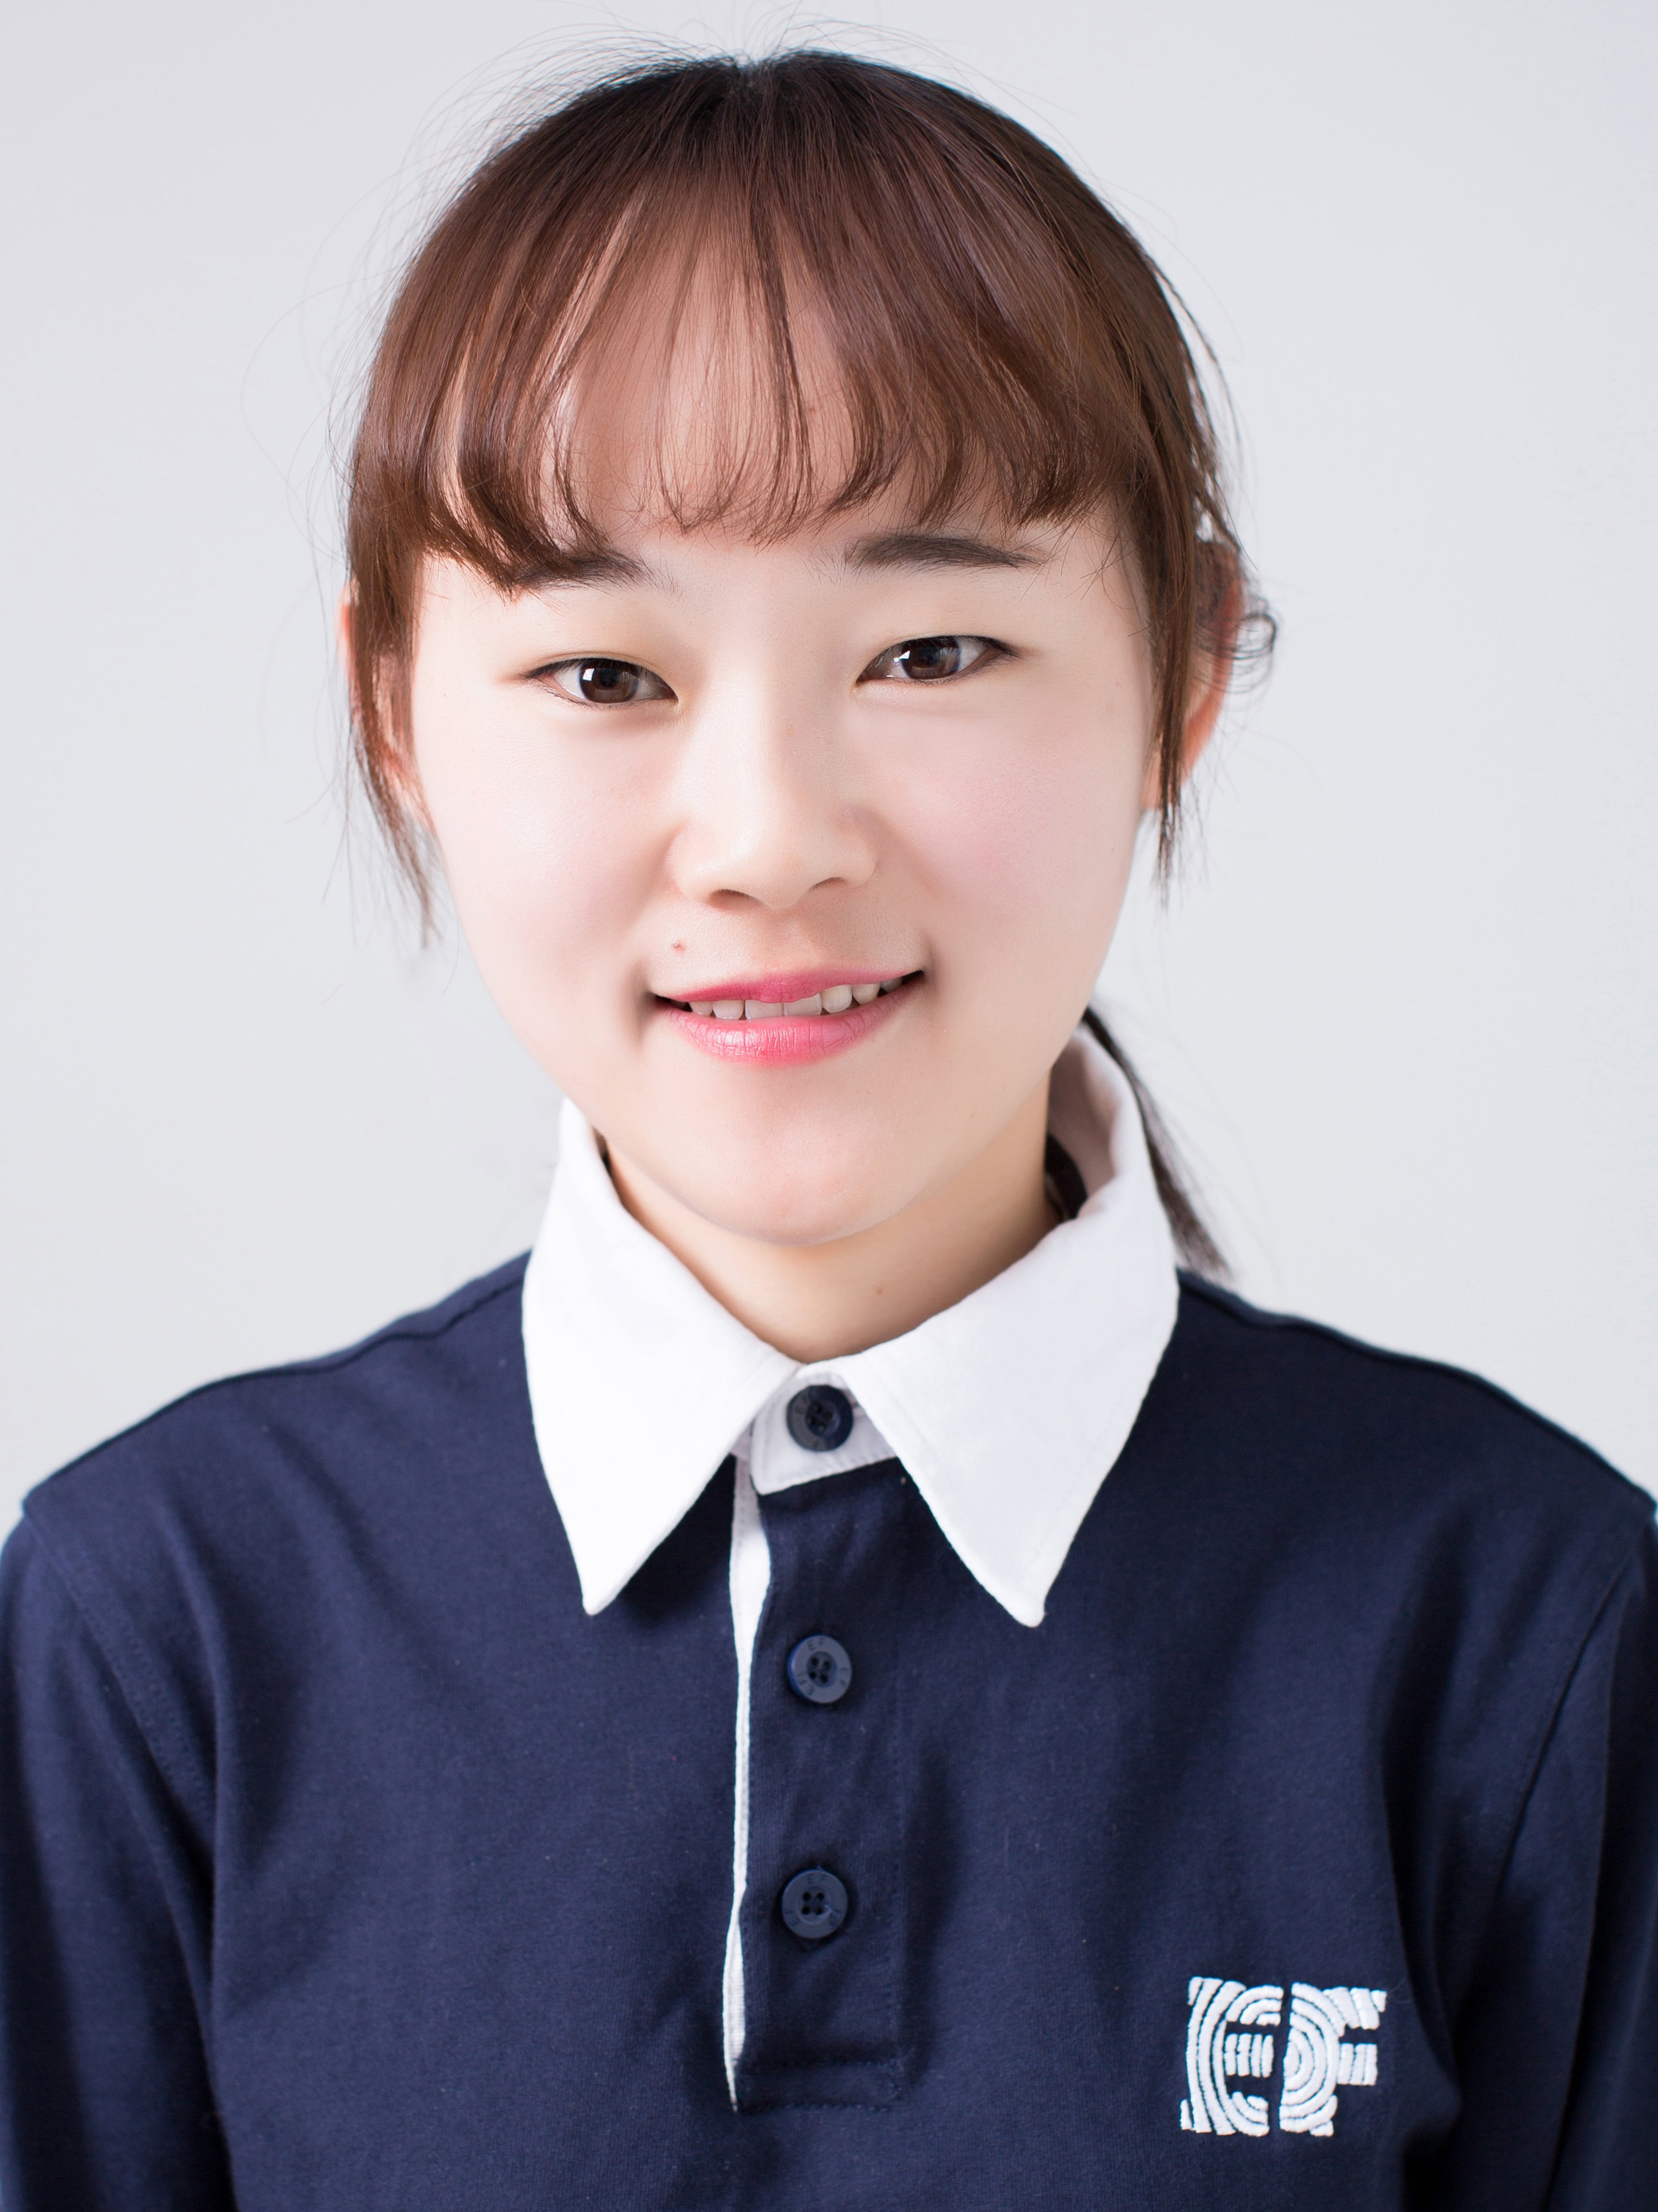 Candy - School 1 Associate Director of StudiesCandy has been working at EF for six years and nothing makes her happier than seeing her students smile. She always tries her best to let them learn as well as have fun in her classes. Her motto is 'Open the world through education'.